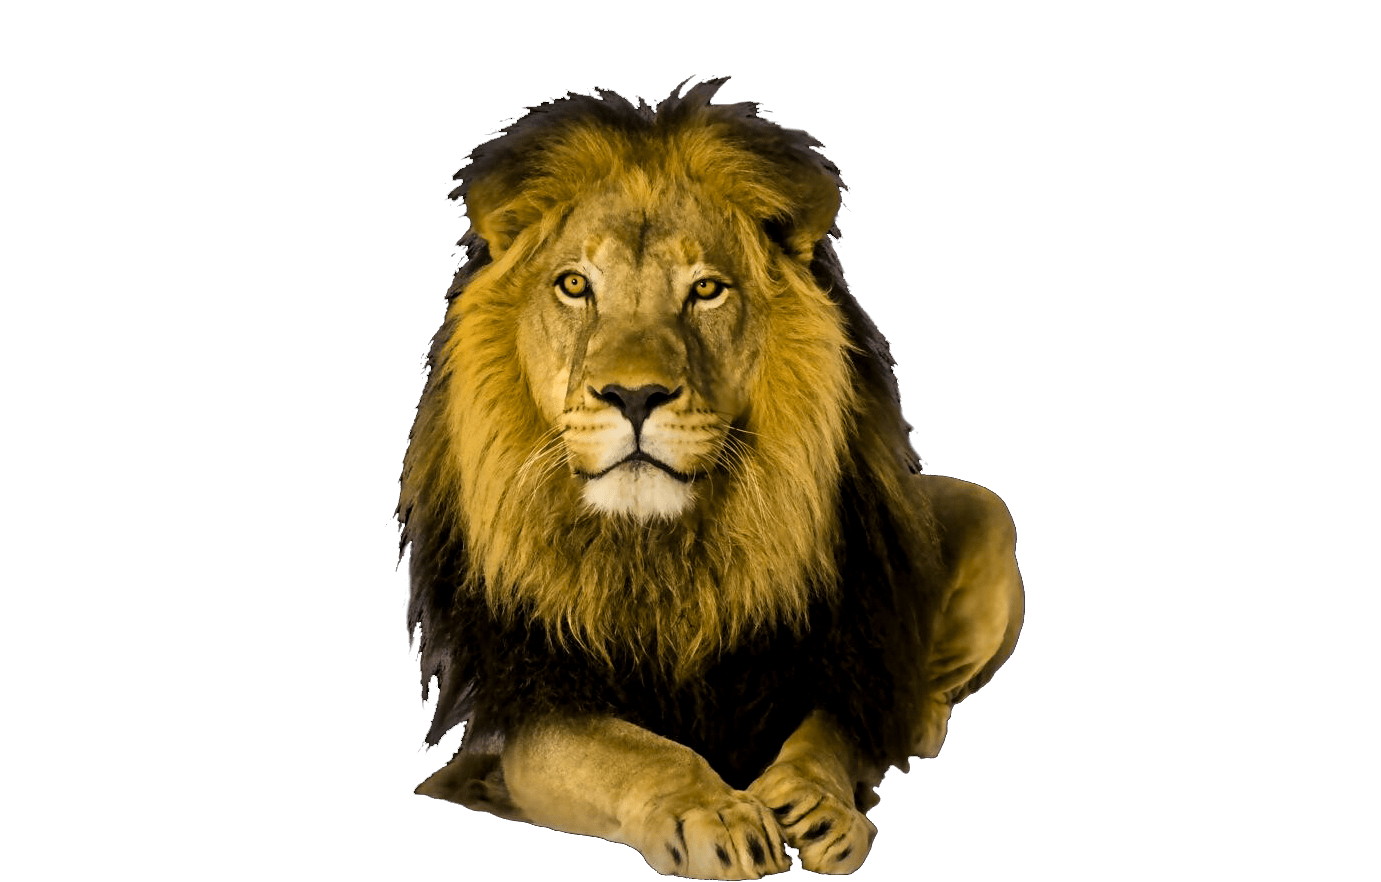 animals clipart png,cartoon animals png,cute animal png,wild animals png, animals  png image, cute animal png (17) - Wild Animals PNG